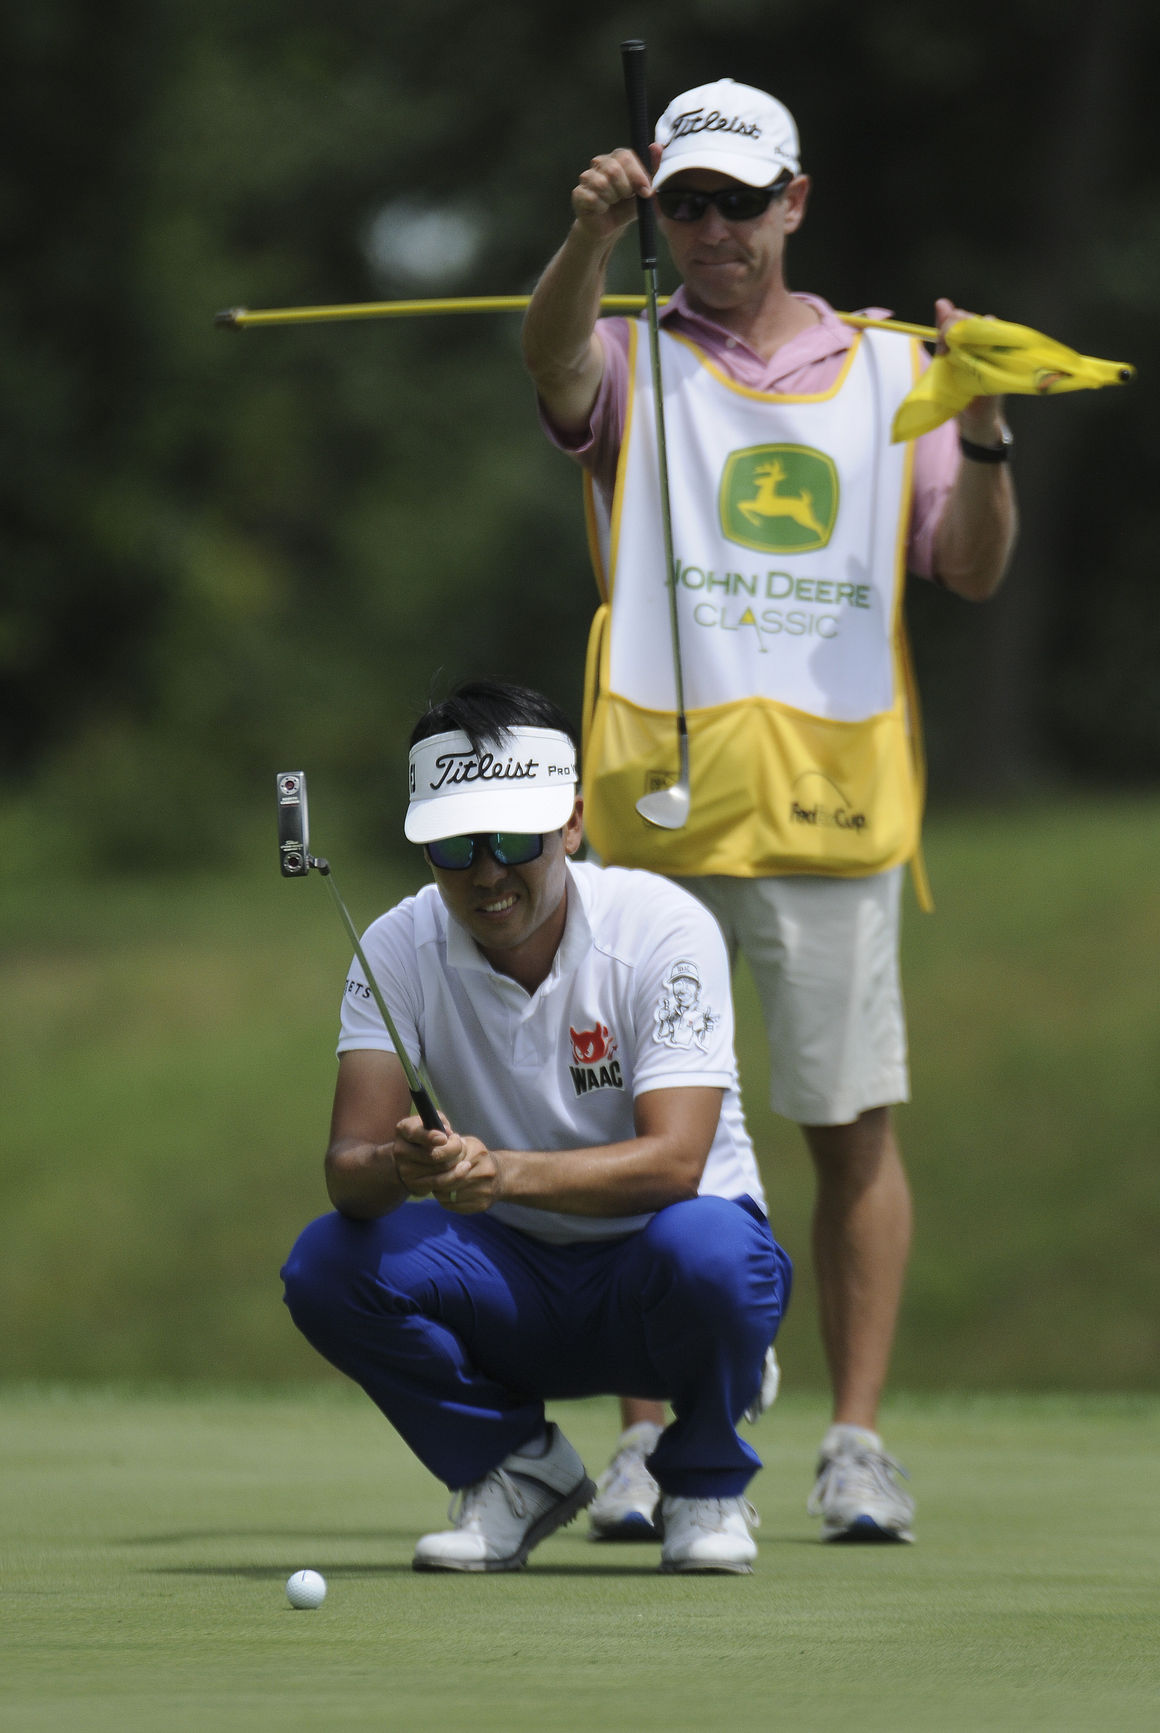 Na and Hadwin pair for big jump at JDC | Golf | qconline.com